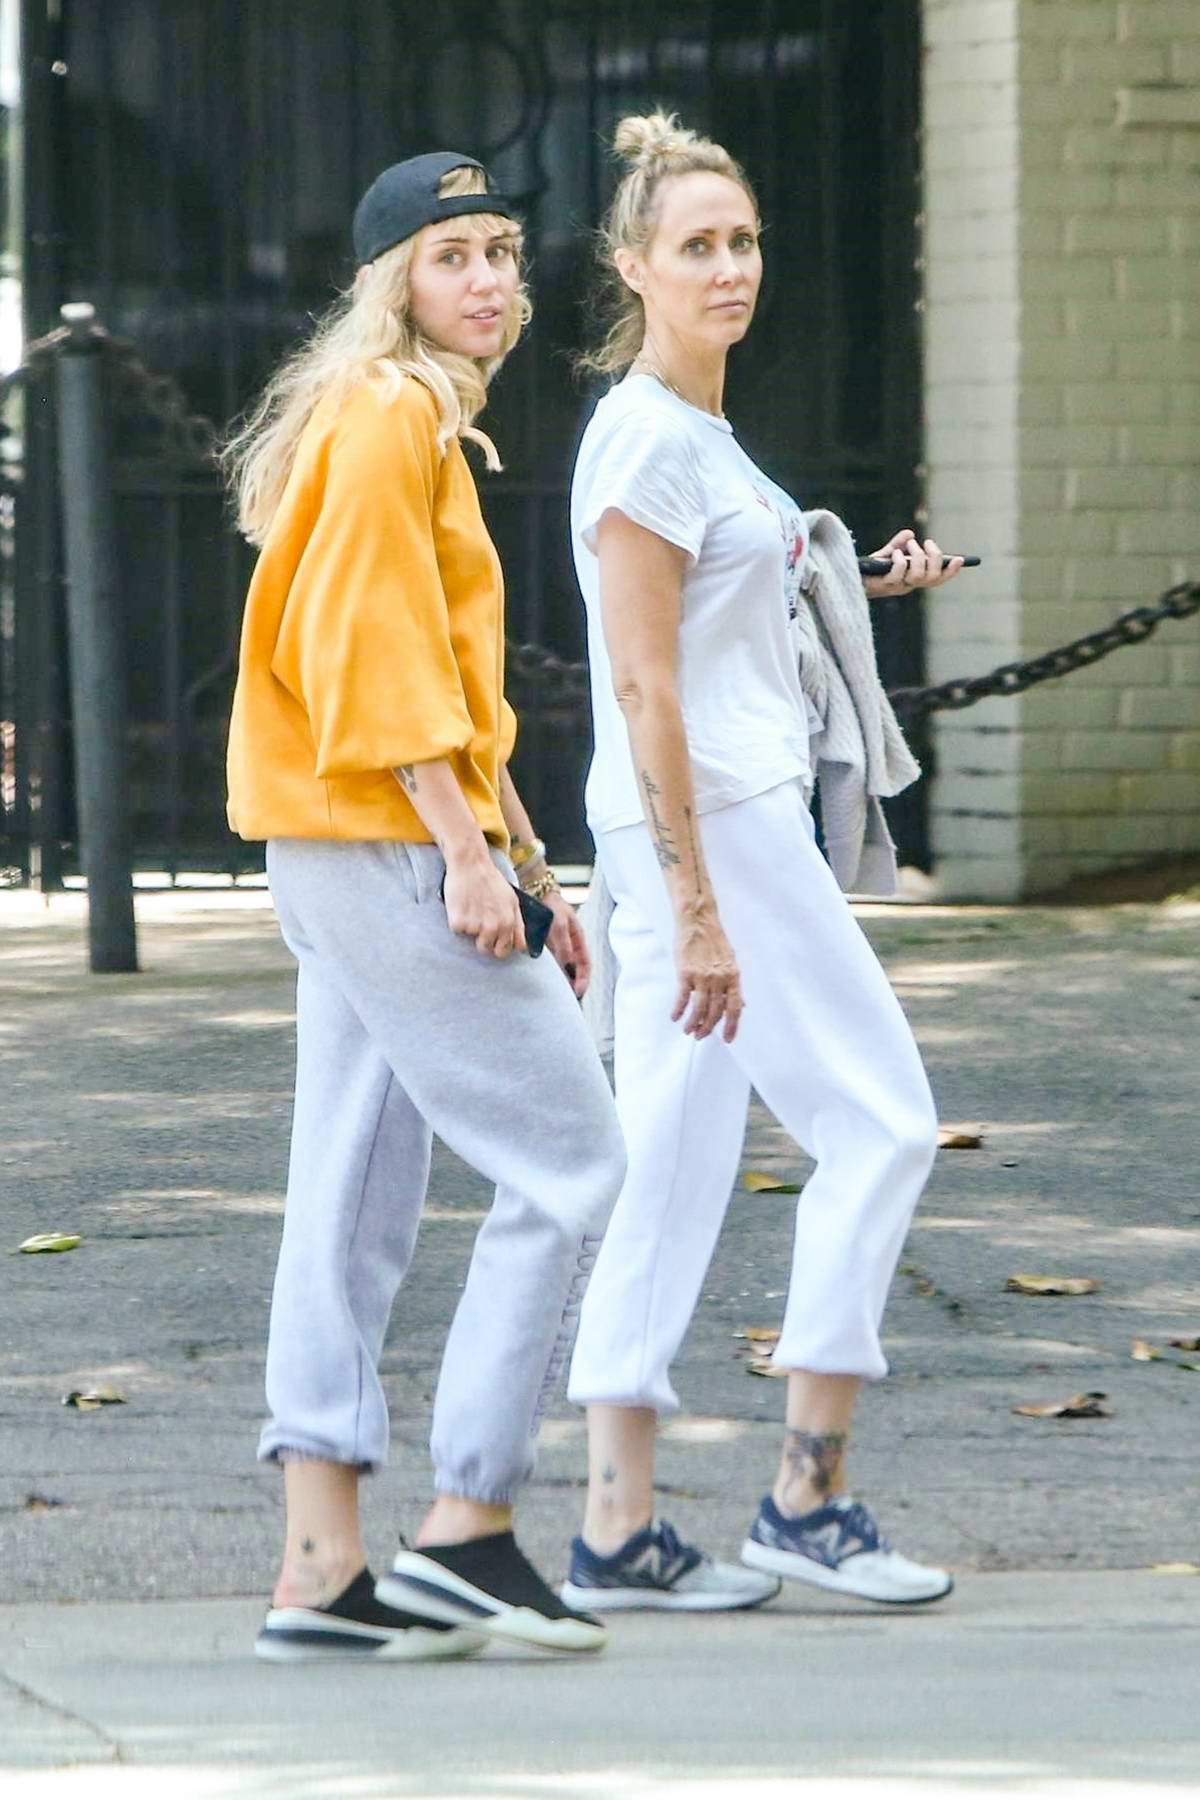 Miley Cyrus steps out for a walk with her mom Tish in Los Angeles